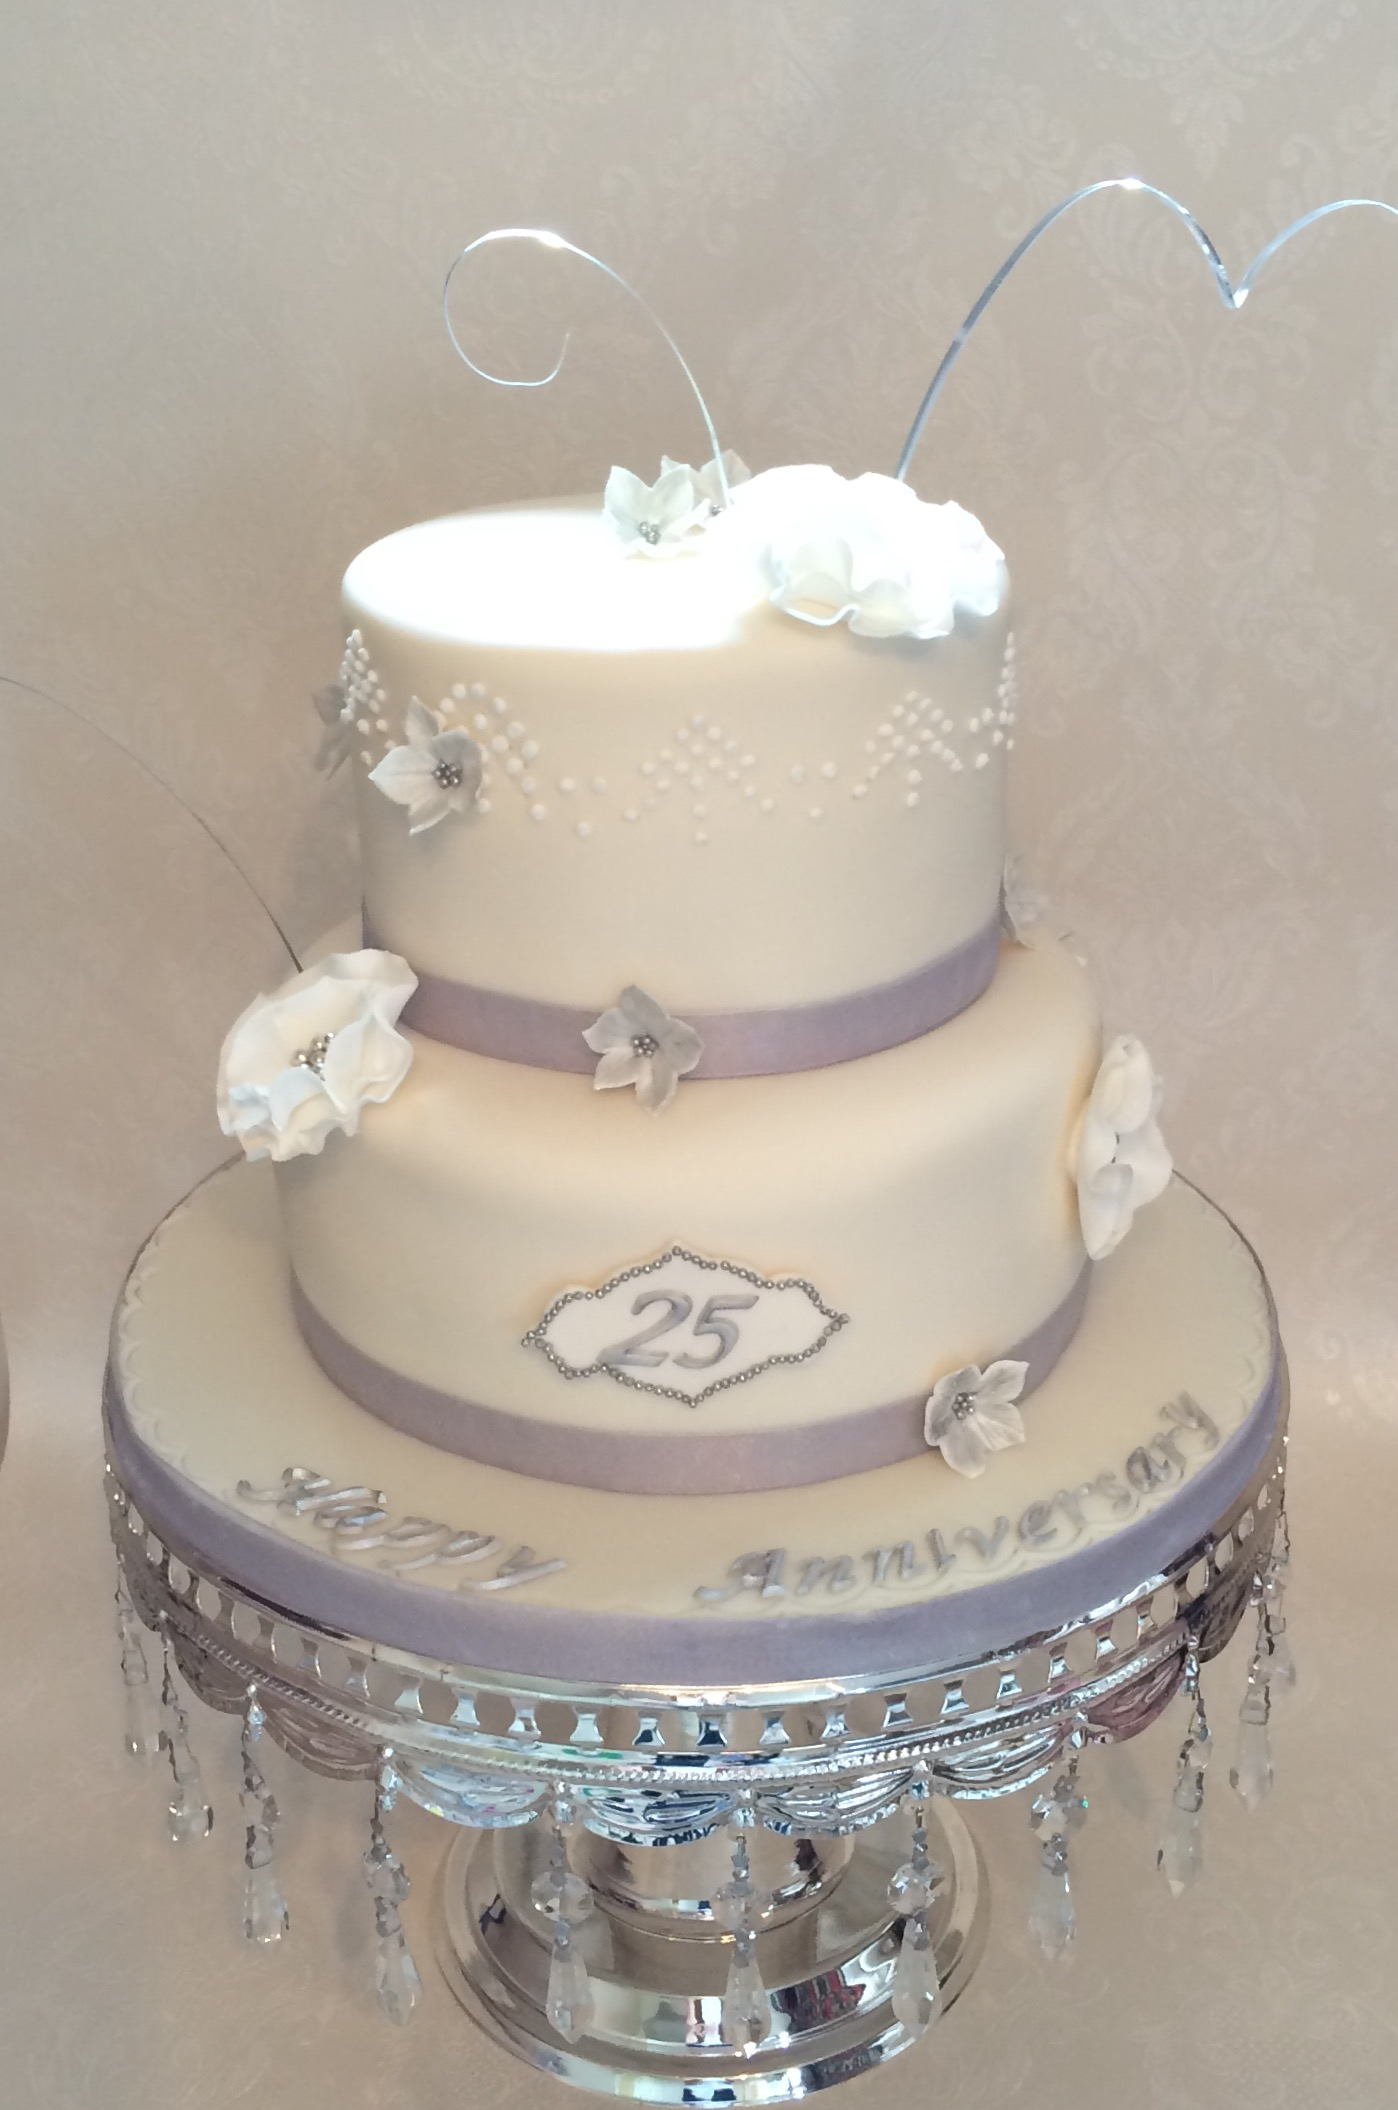 HD wallpapers 25th anniversary cake ideas www.patternmobileandroidhd.cf